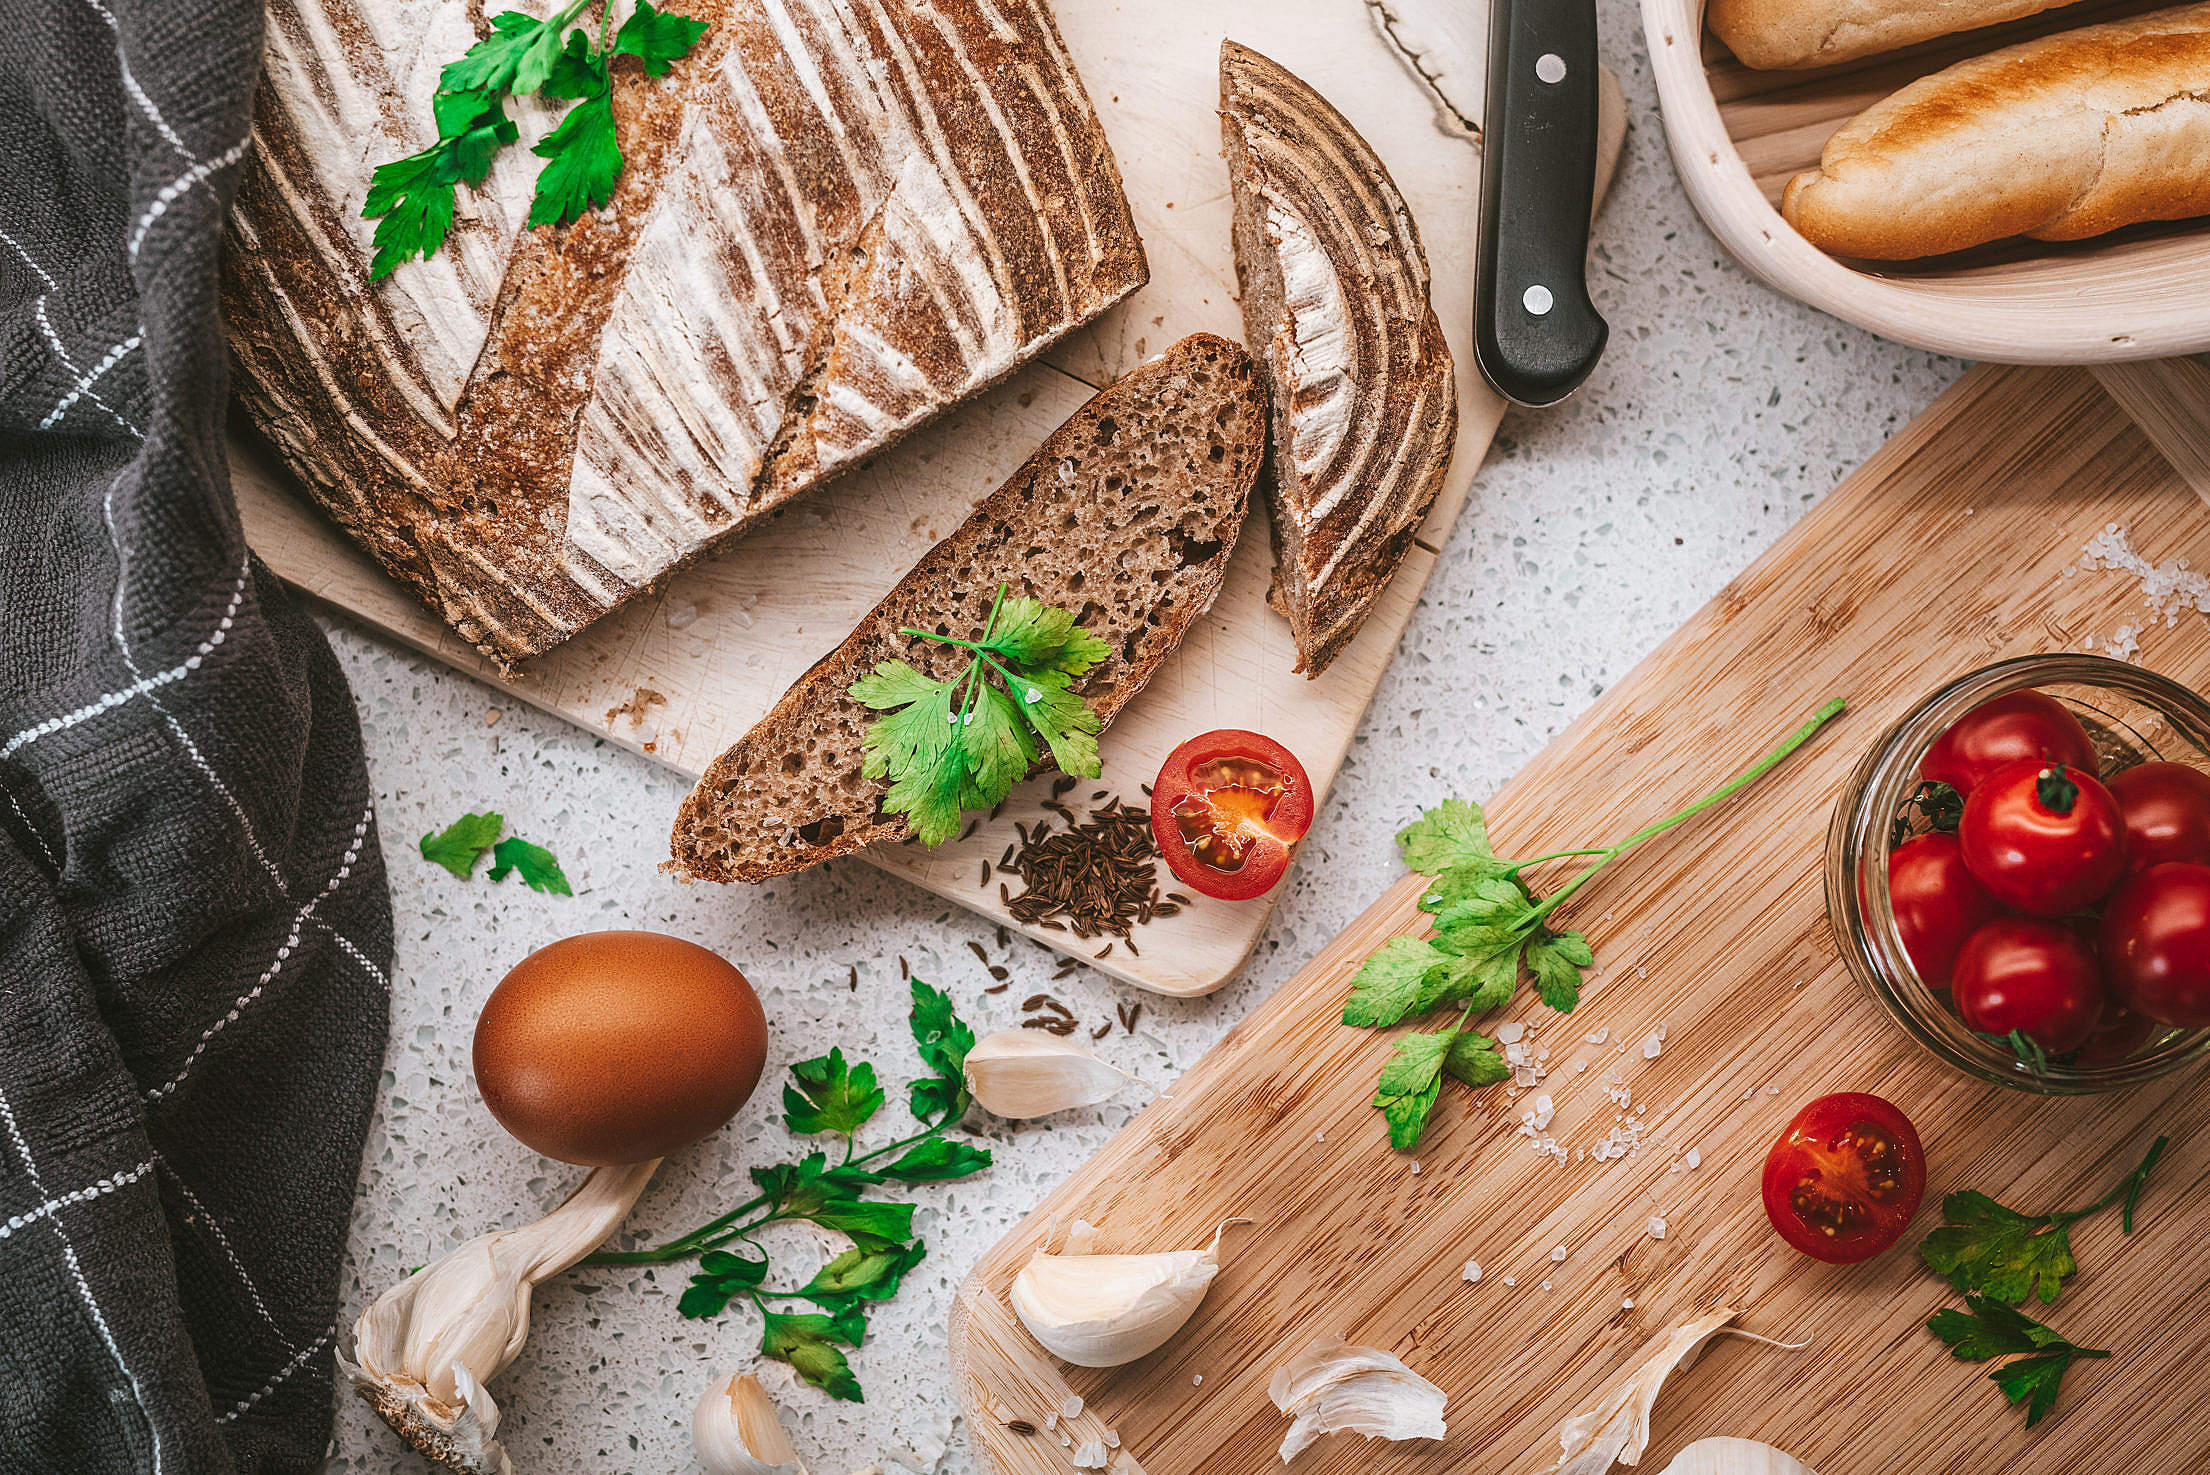 Homemade Fresh Bread Free Stock Photo